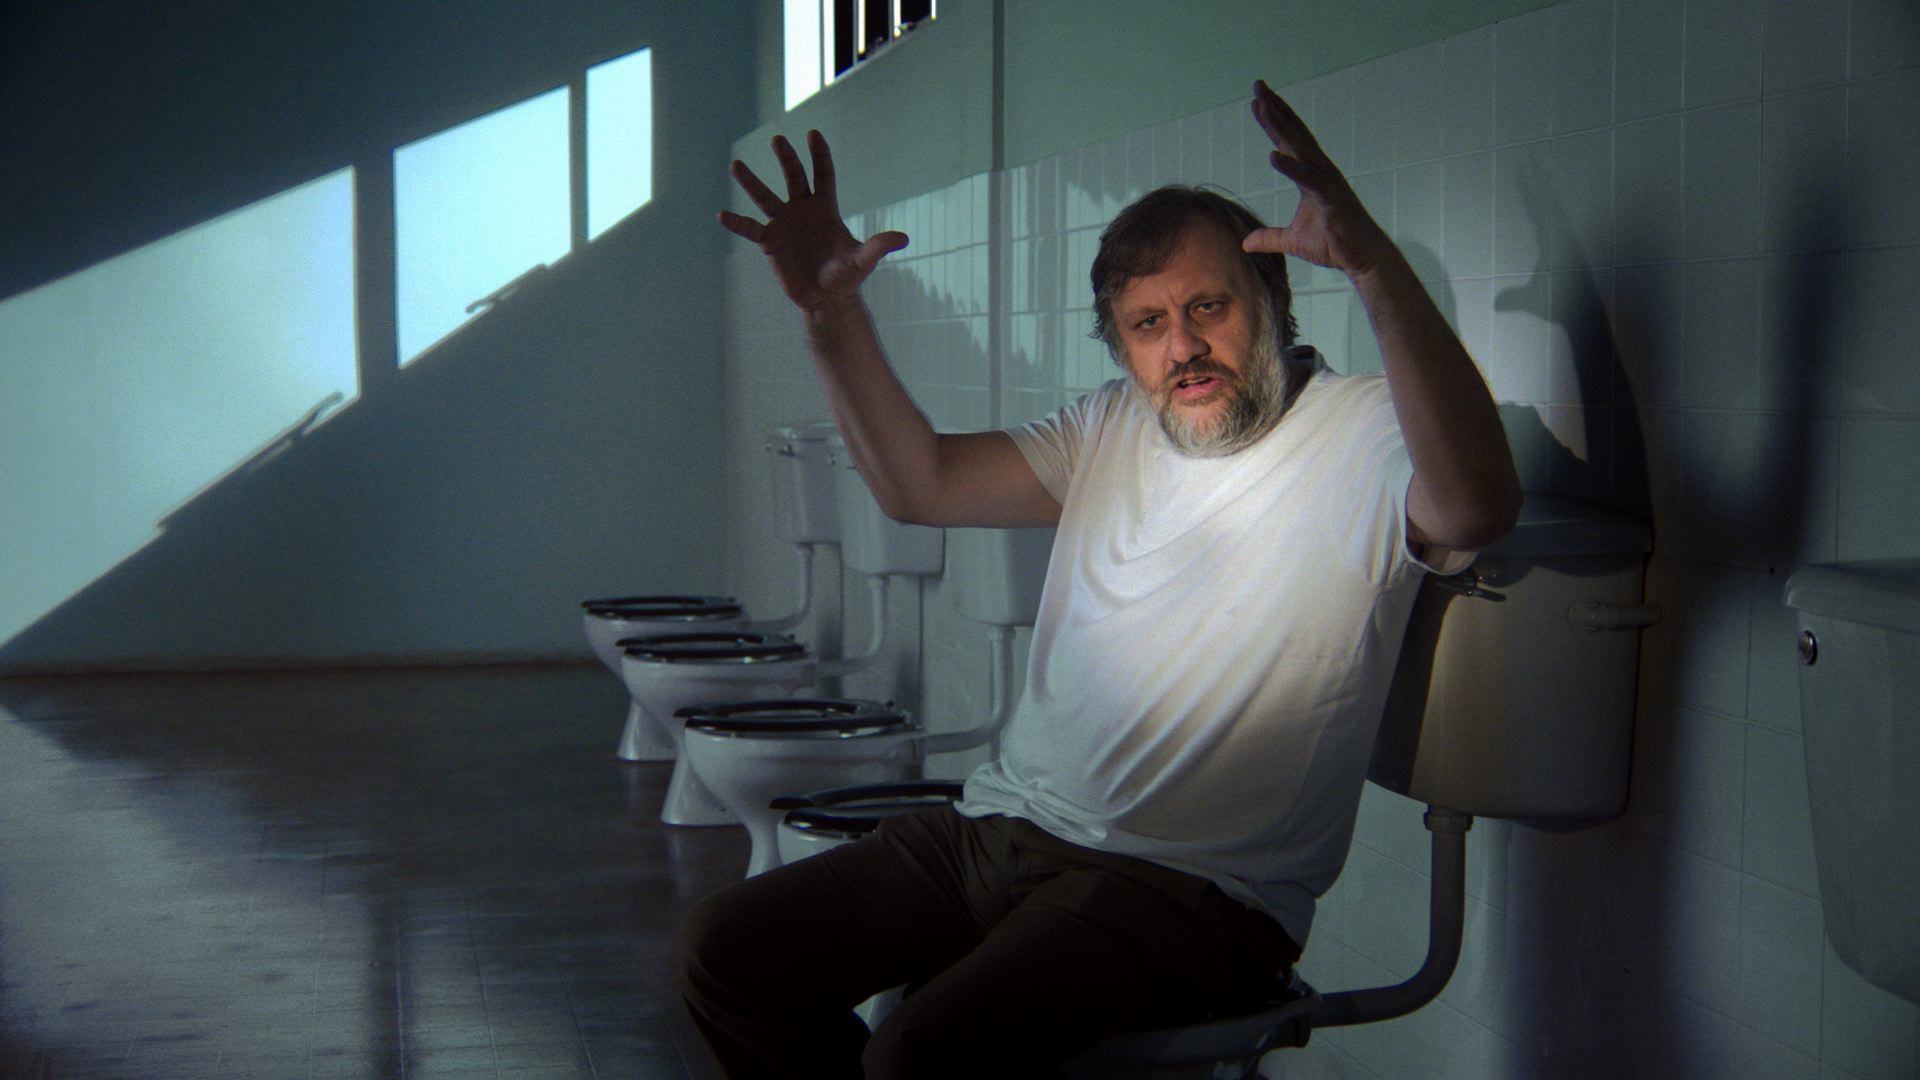 Pervert S Guide To Ideology 2012 Mike Polischuk